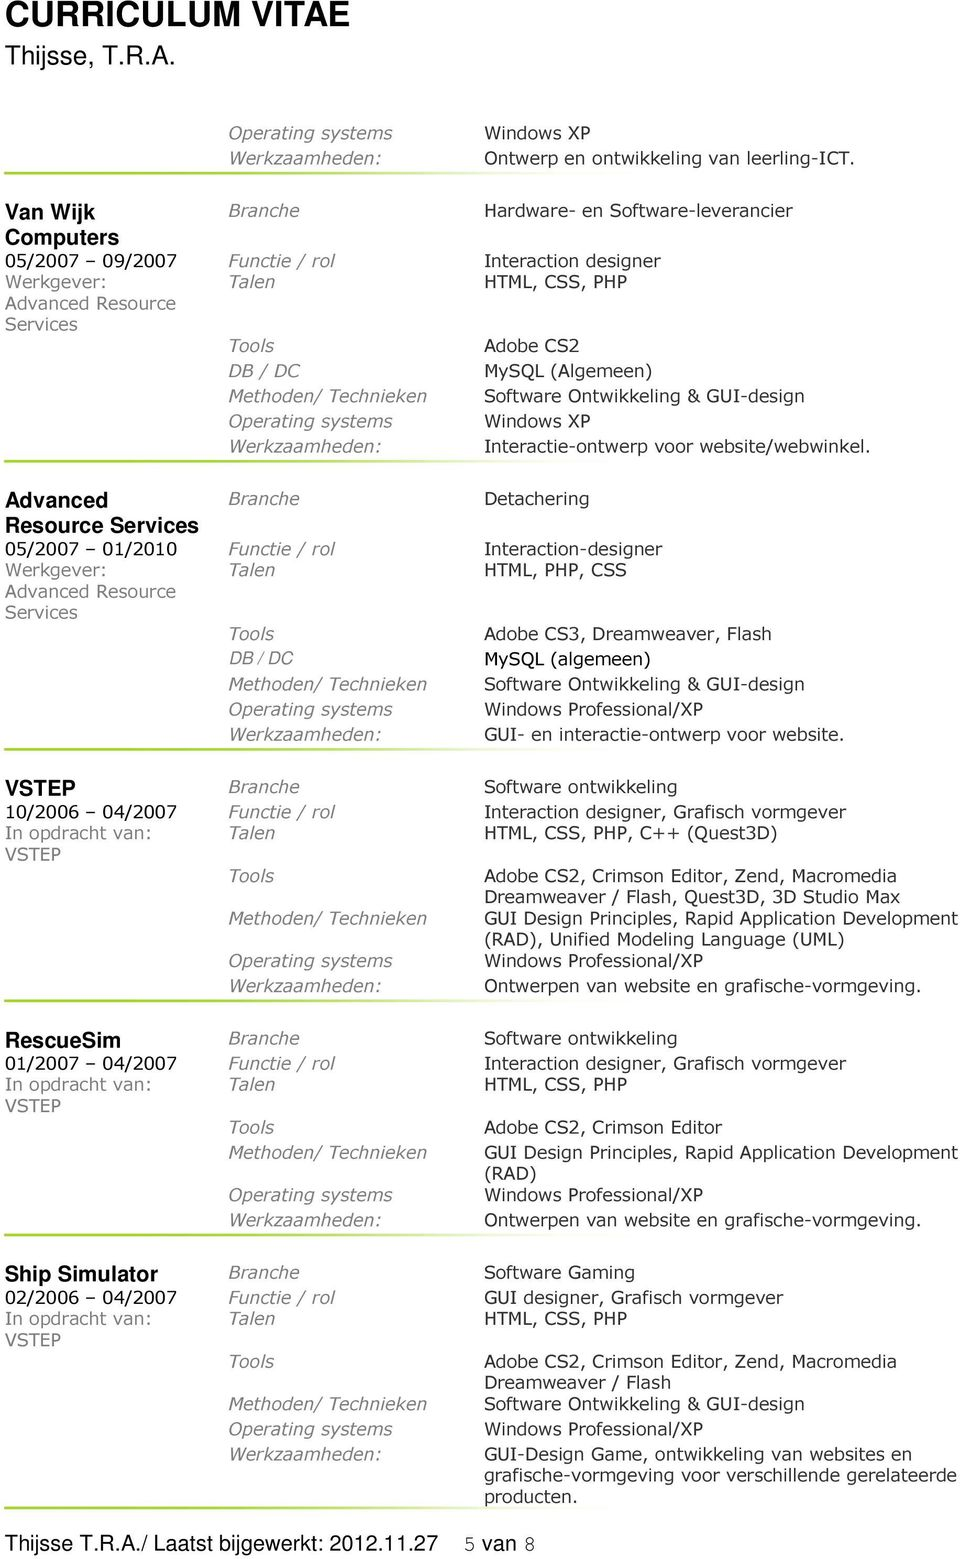 Advanced Detachering Resource Services 05/2007 01/2010 Functie / rol Interaction-designer HTML, PHP, CSS Advanced Resource Services Adobe CS3, Dreamweaver, Flash MySQL (algemeen) GUI- en